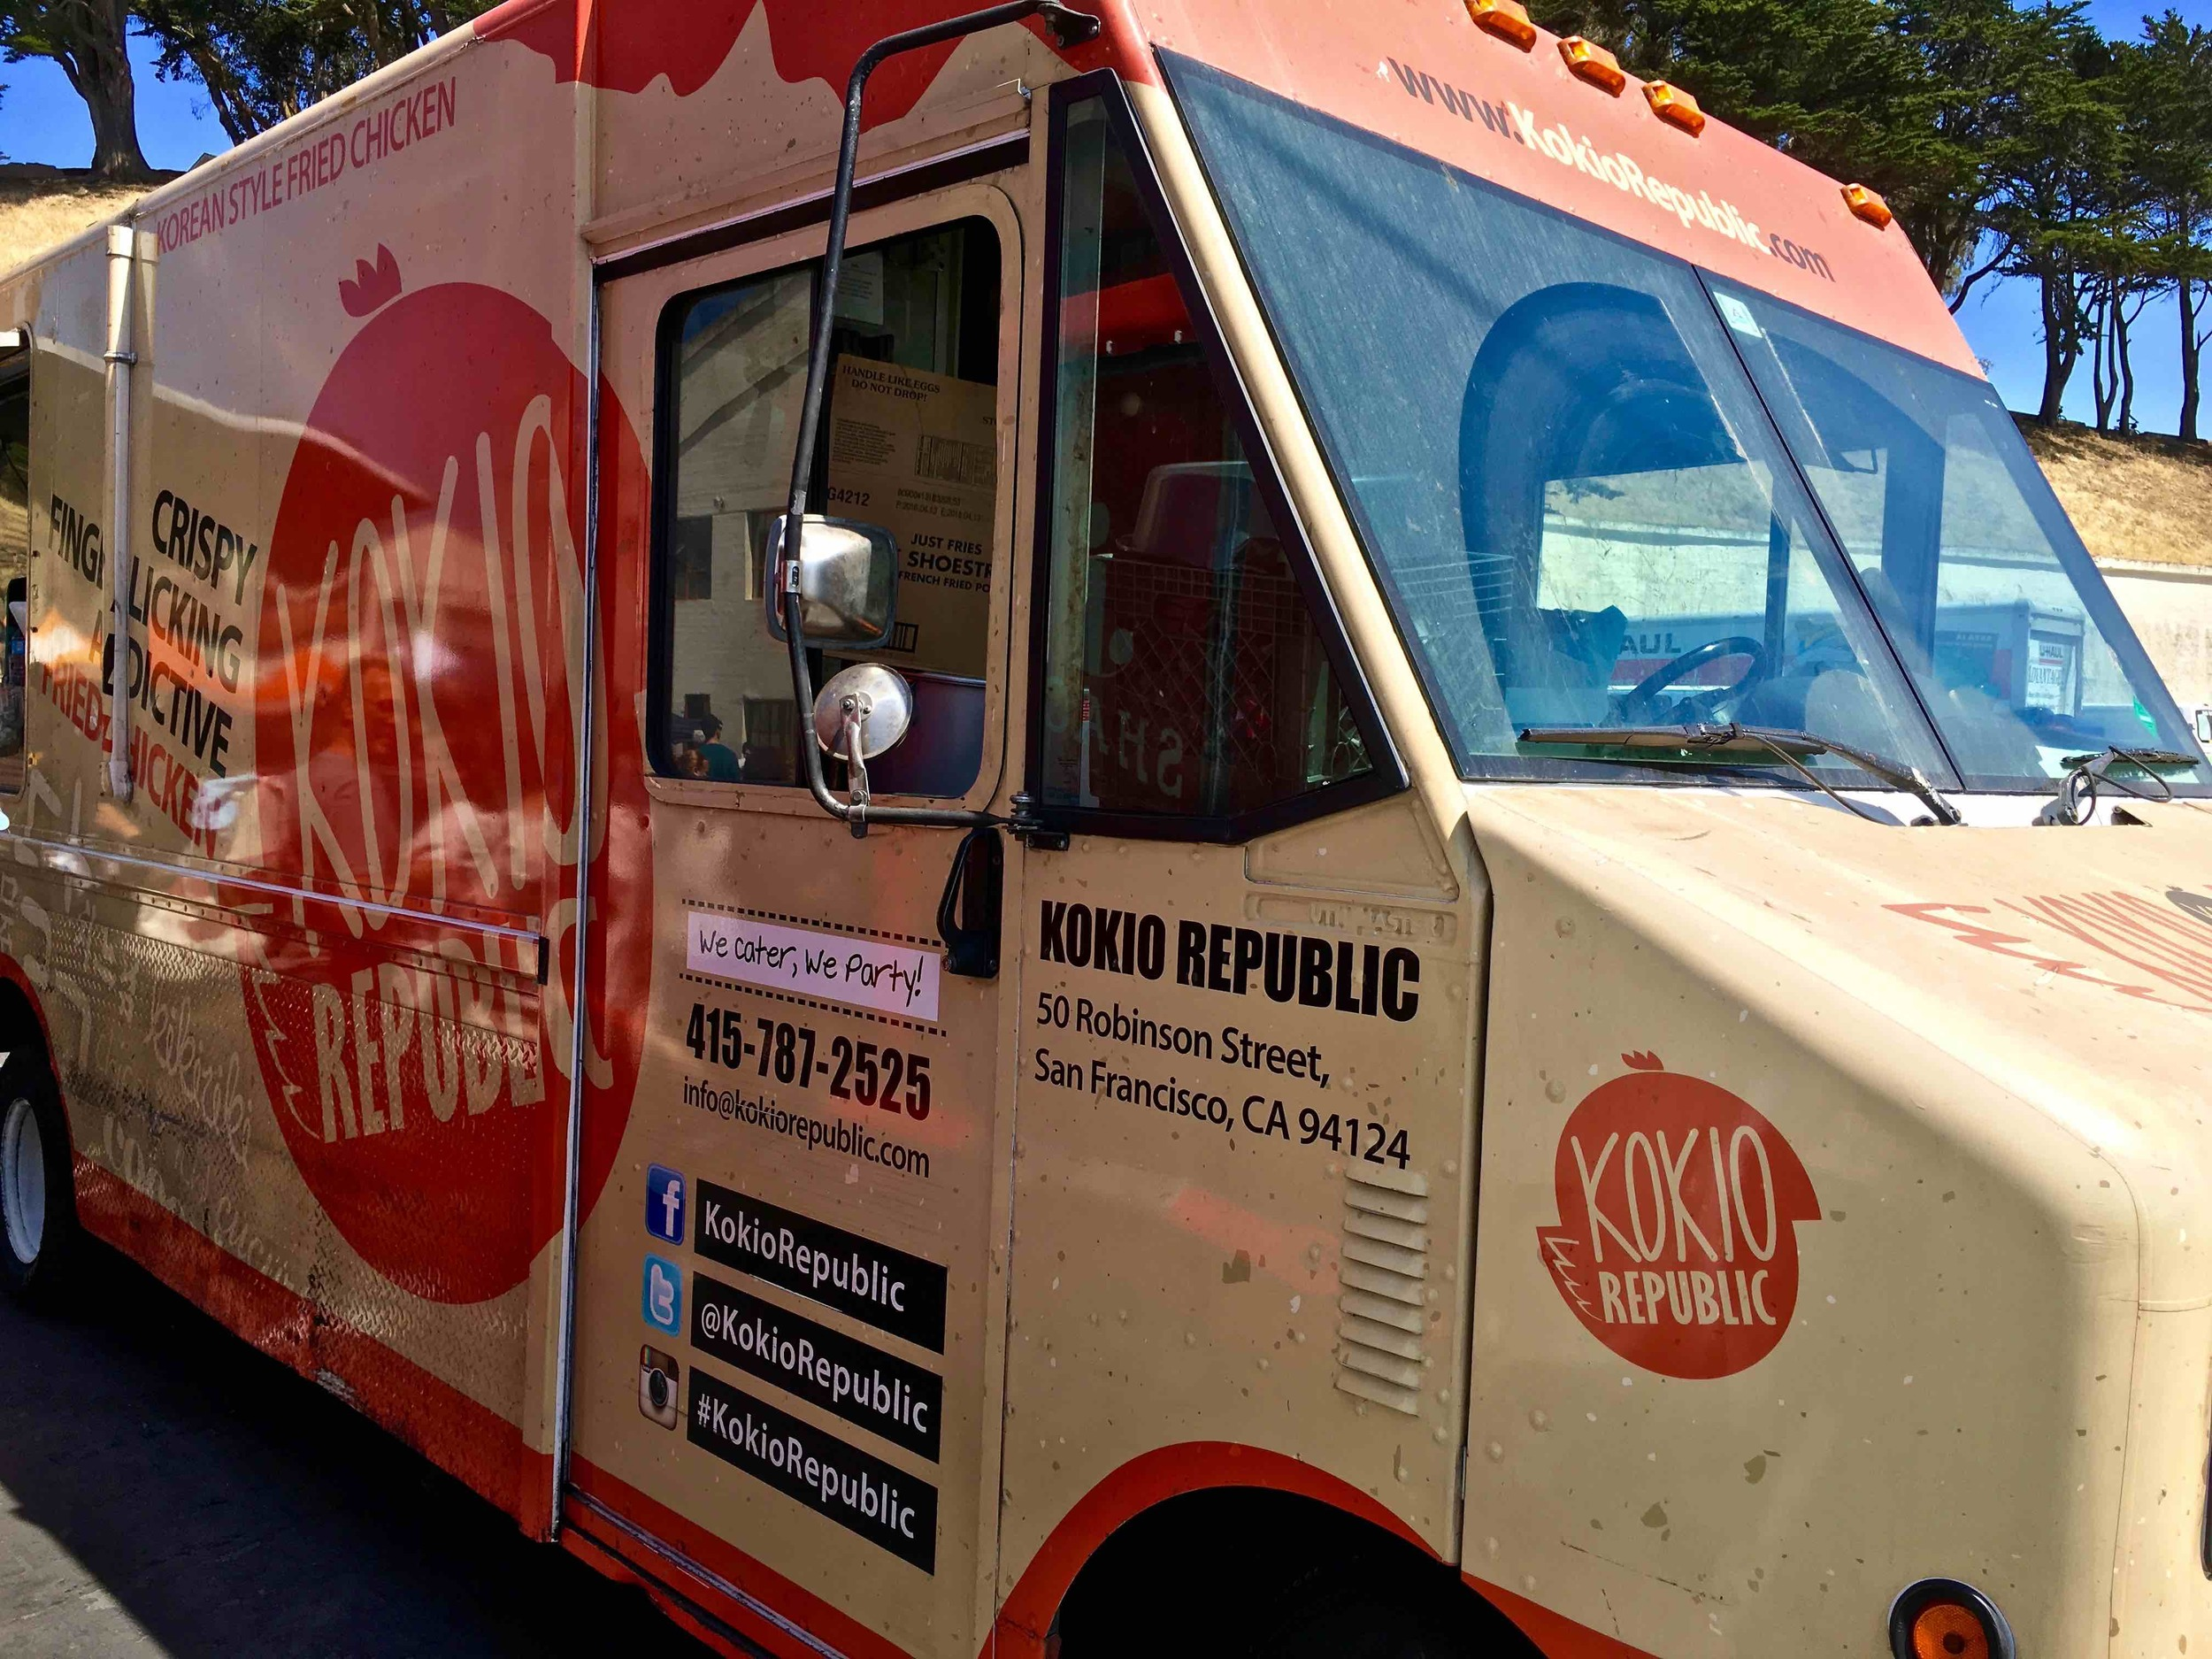 Kokio Republic food truck